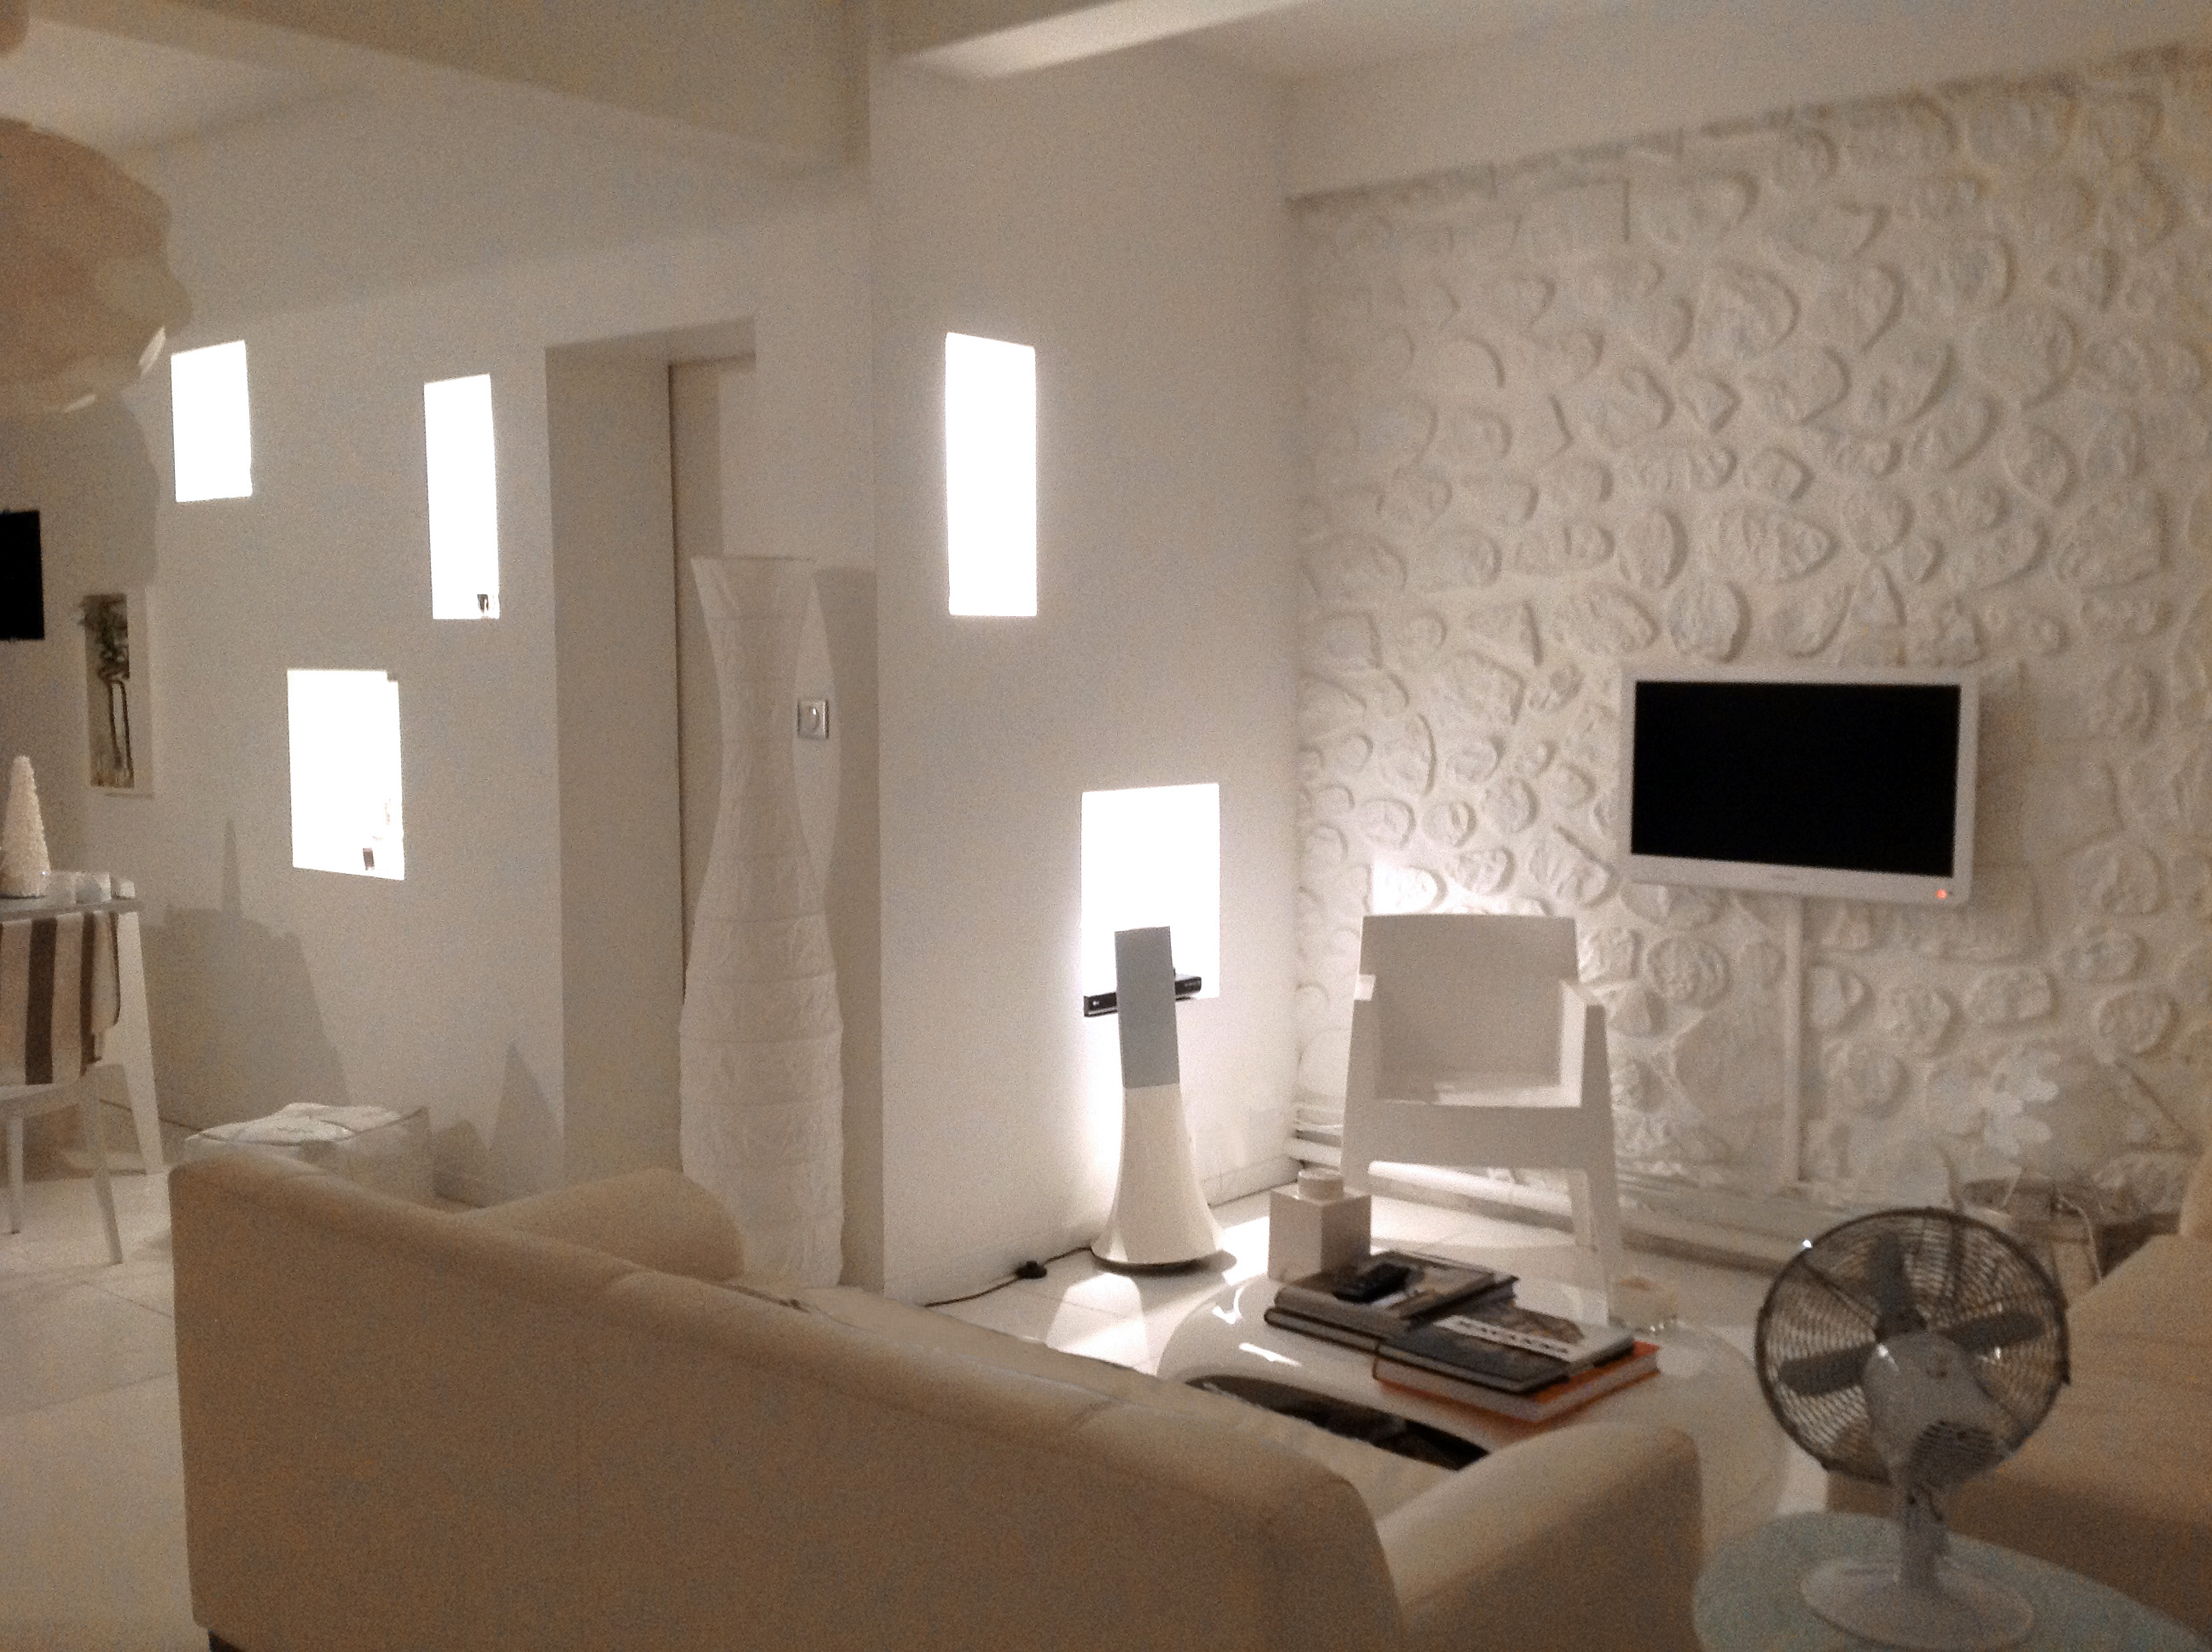 Mod le d coration salon blanc - Exemple de decoration maison ...